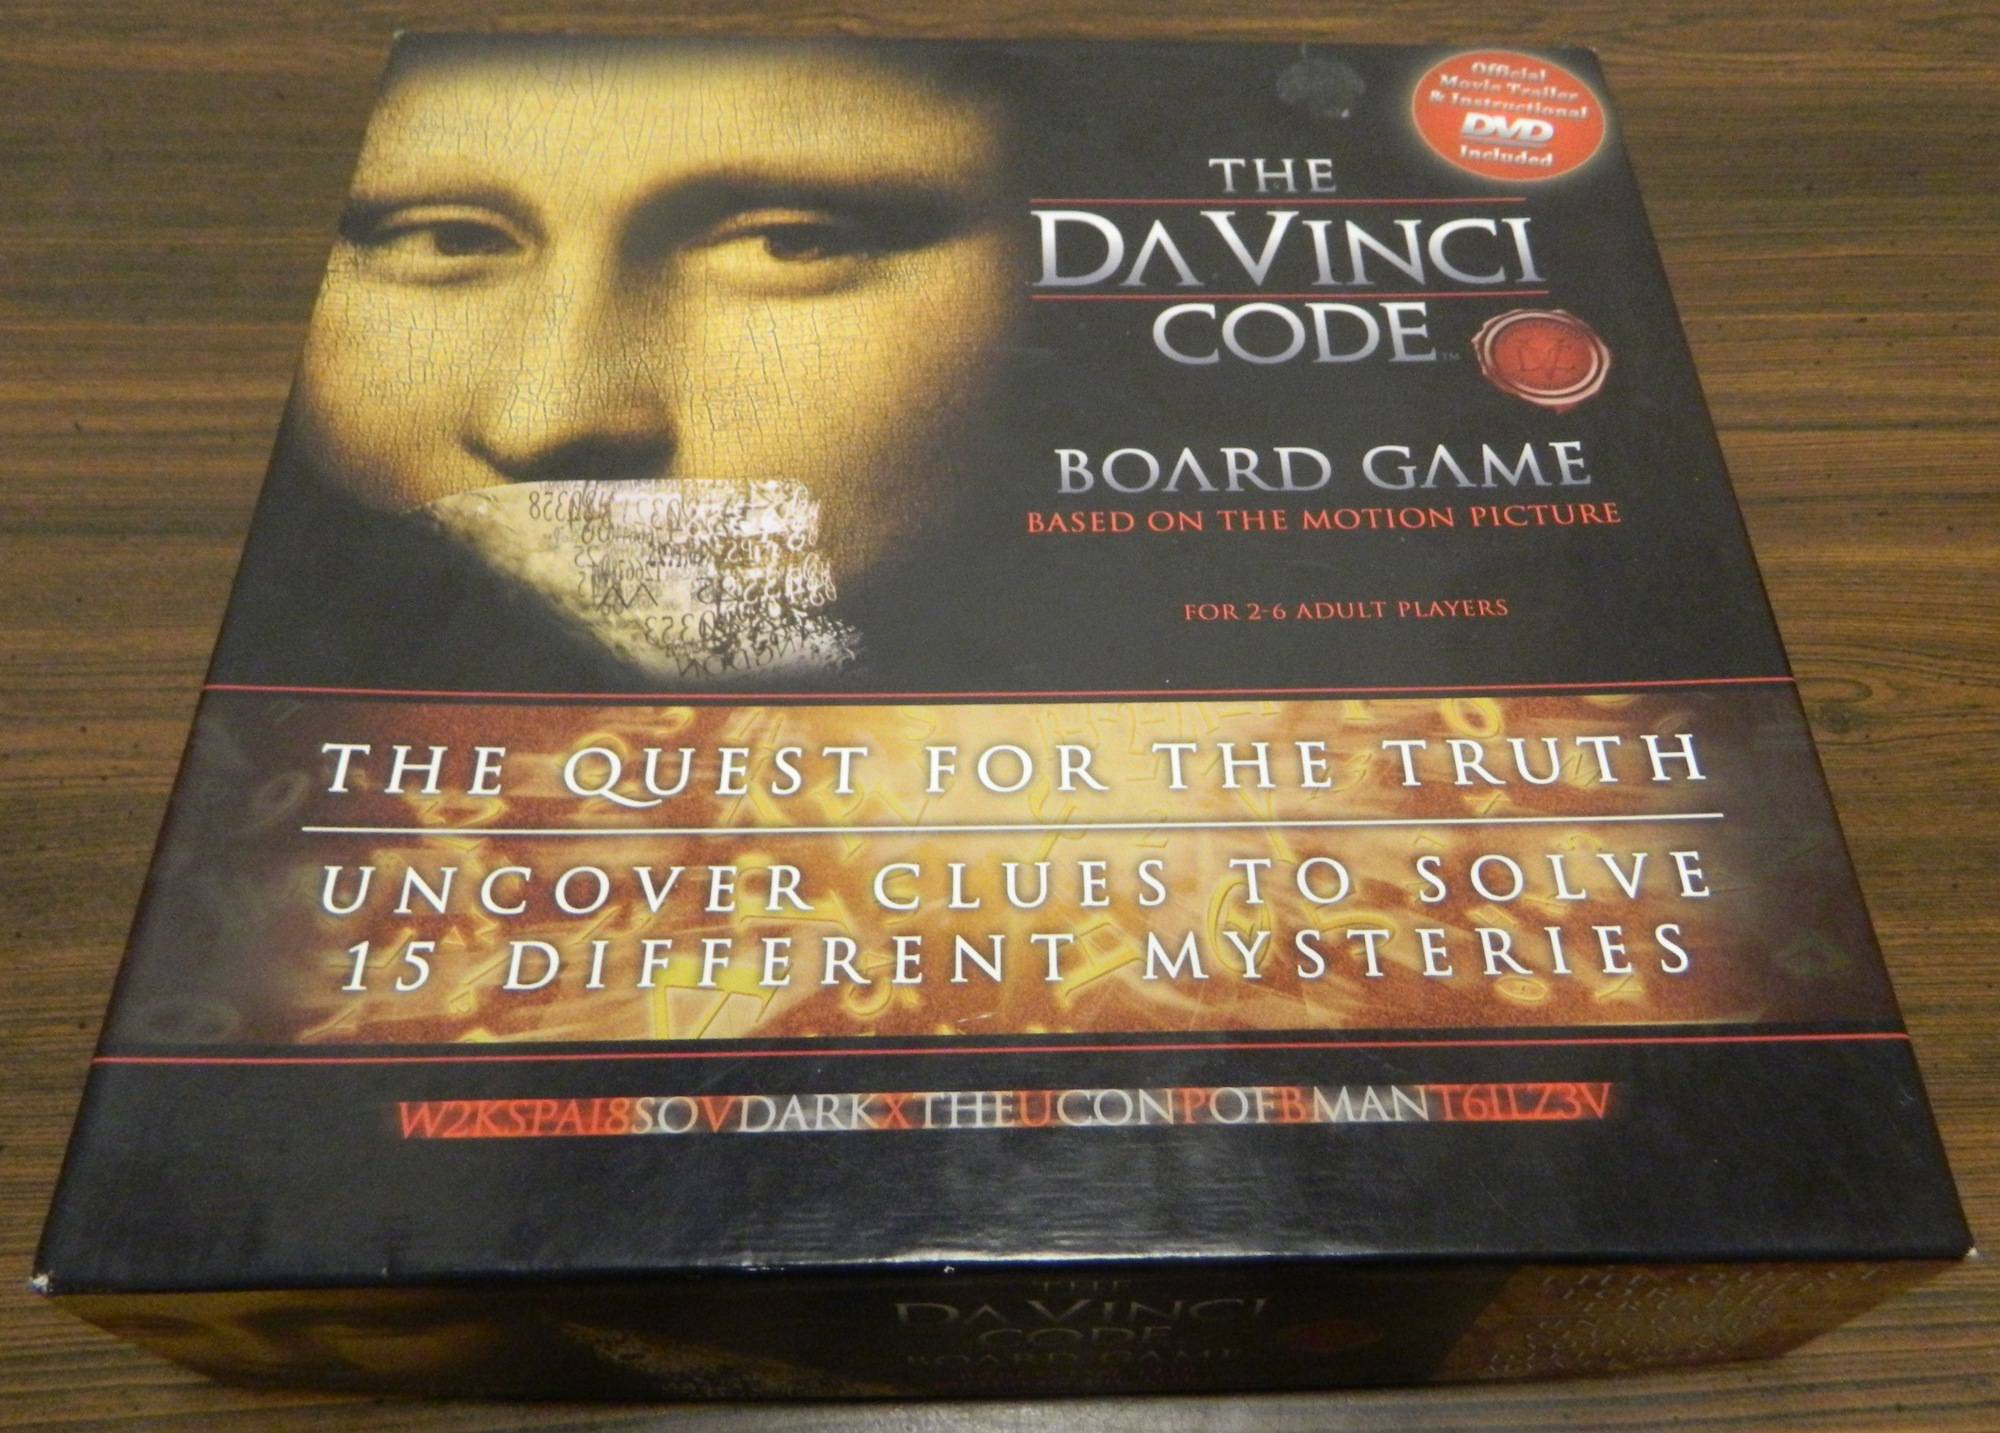 Box for The Da Vinci Code Board Game